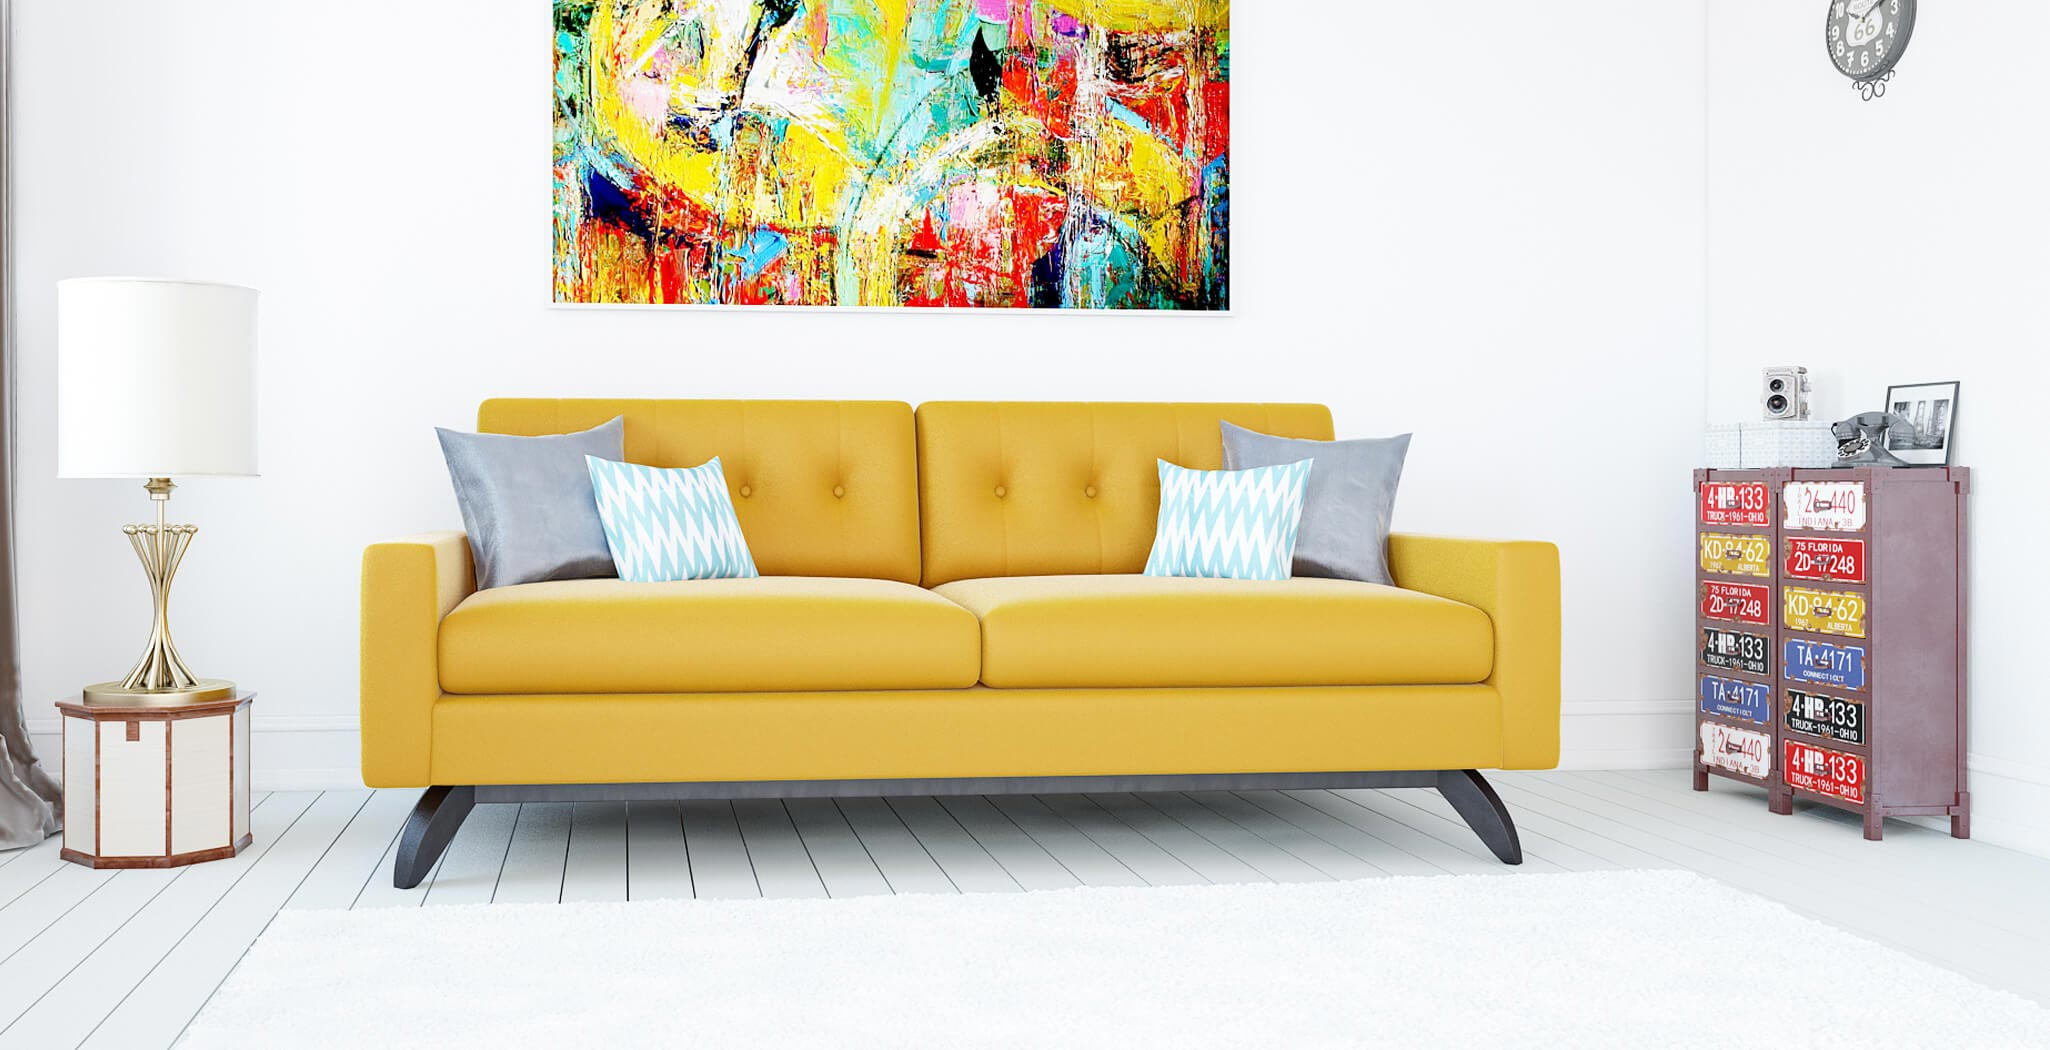 milan sofa furniture gallery 3